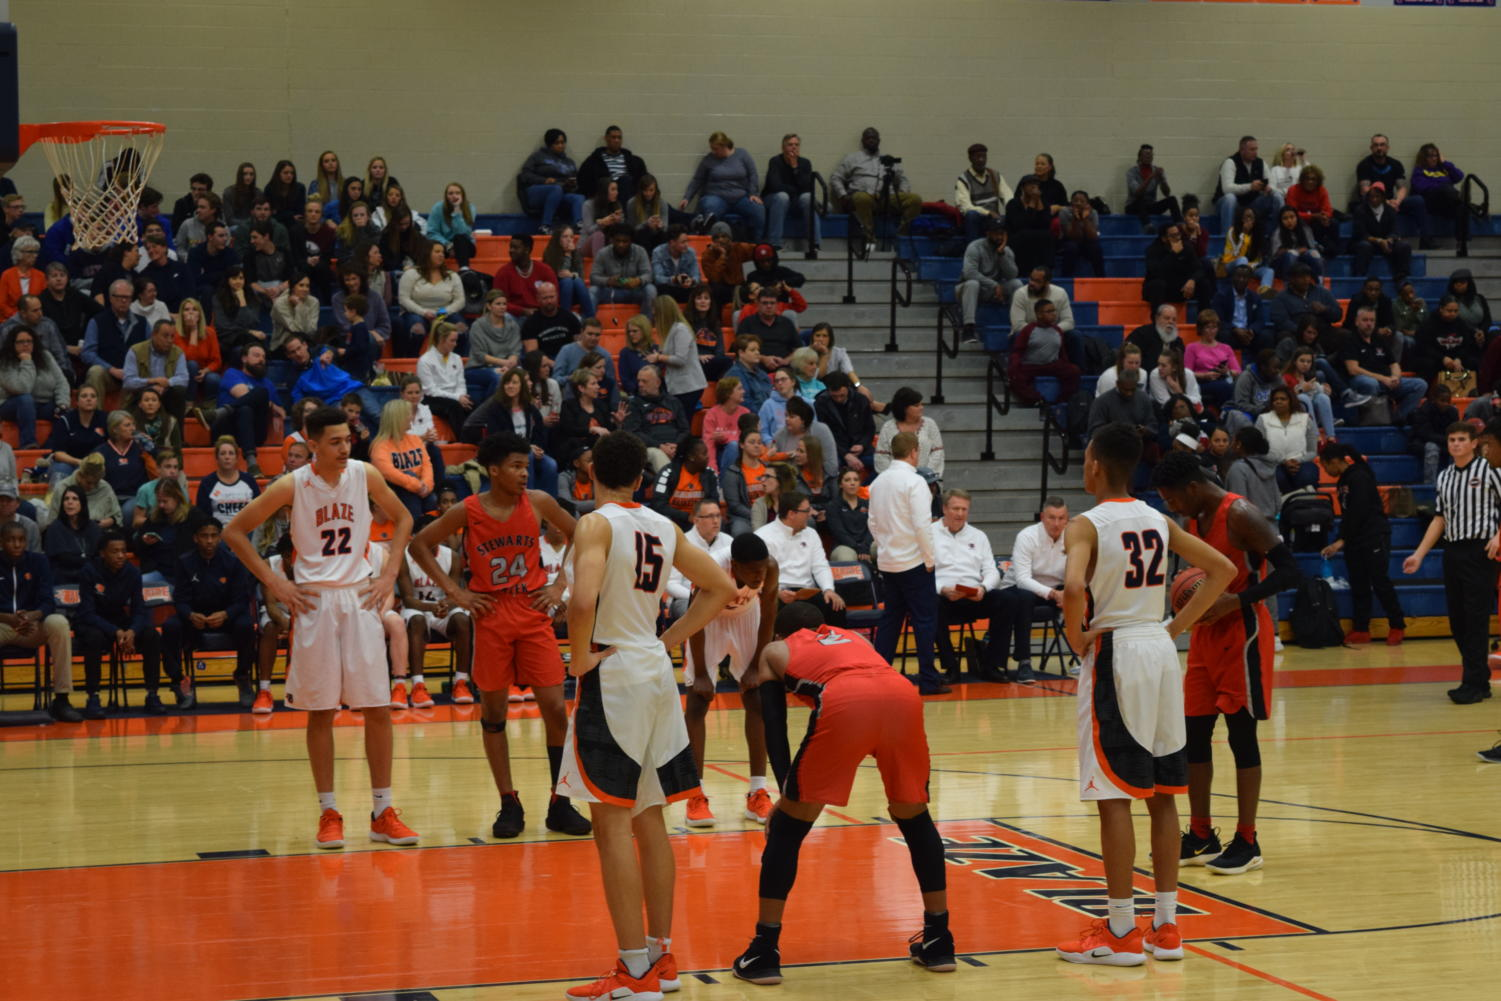 Blackman Basketball team in action.